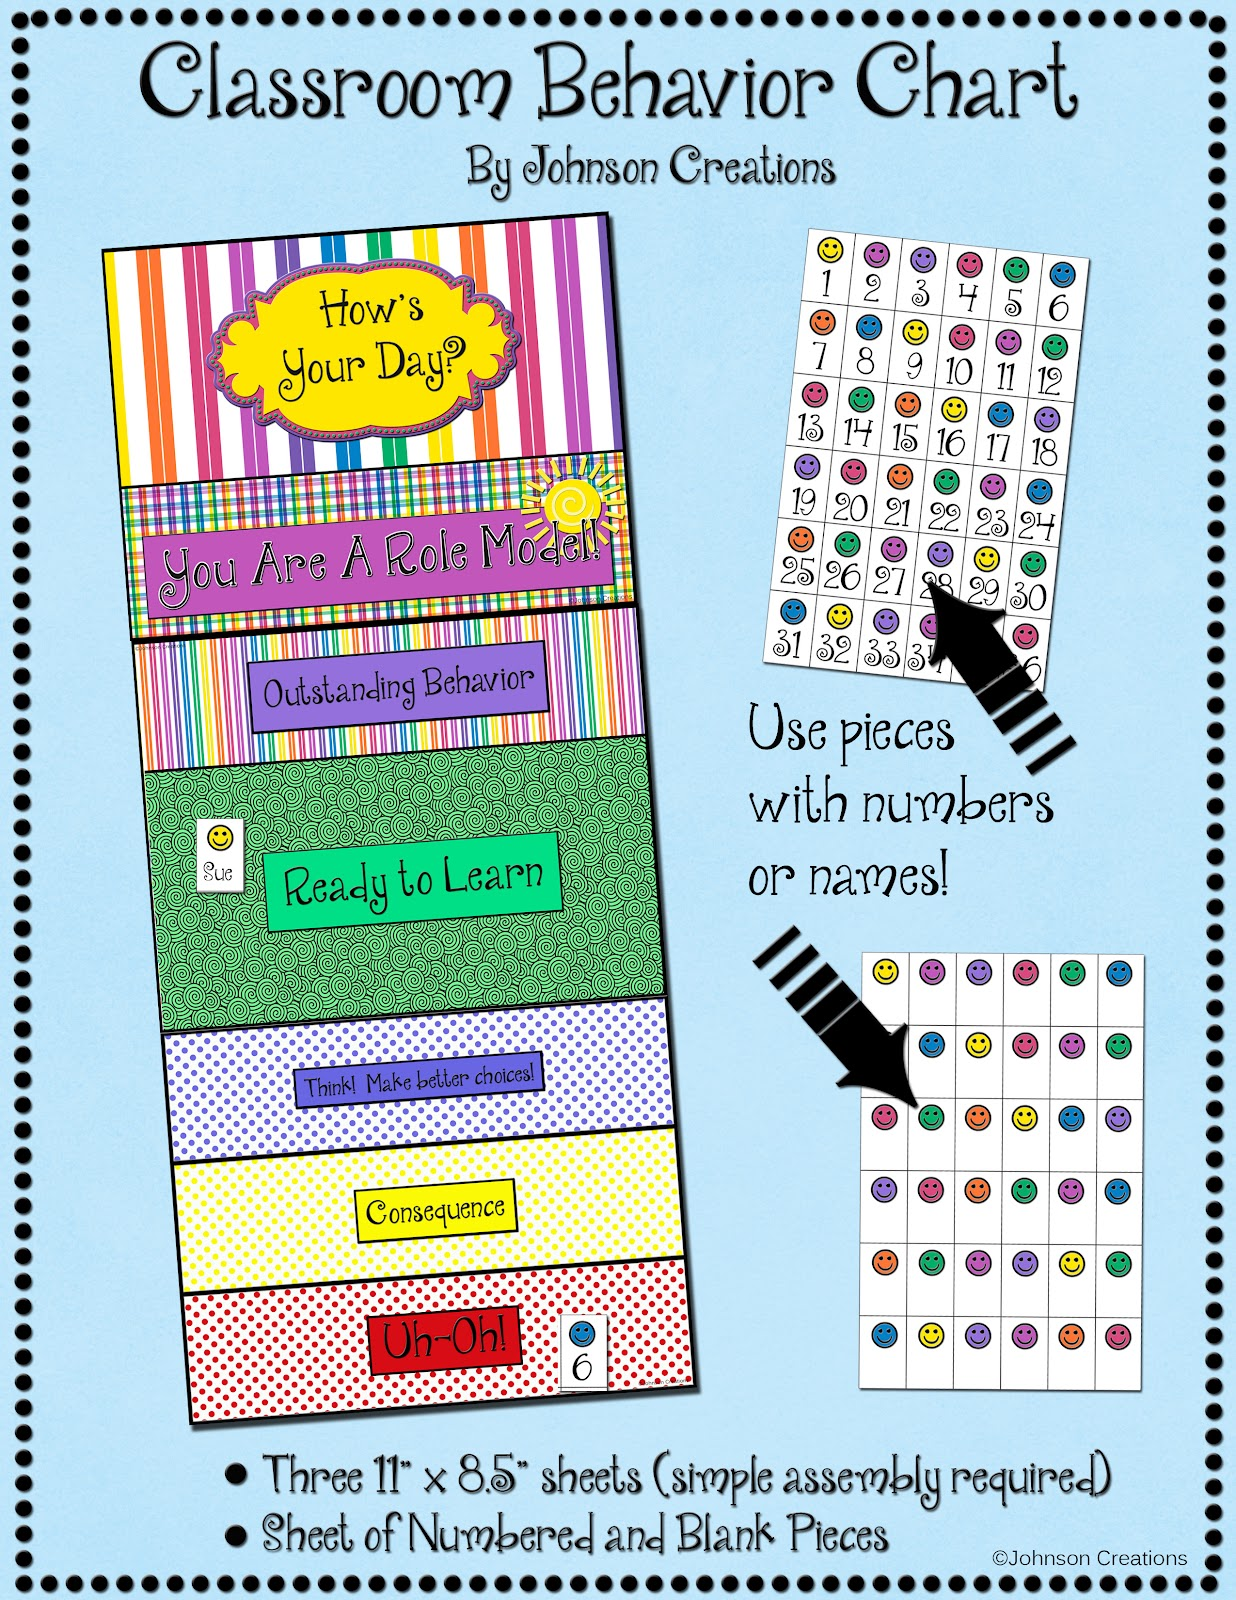 Johnson Creations New Classroom Behavior Chart